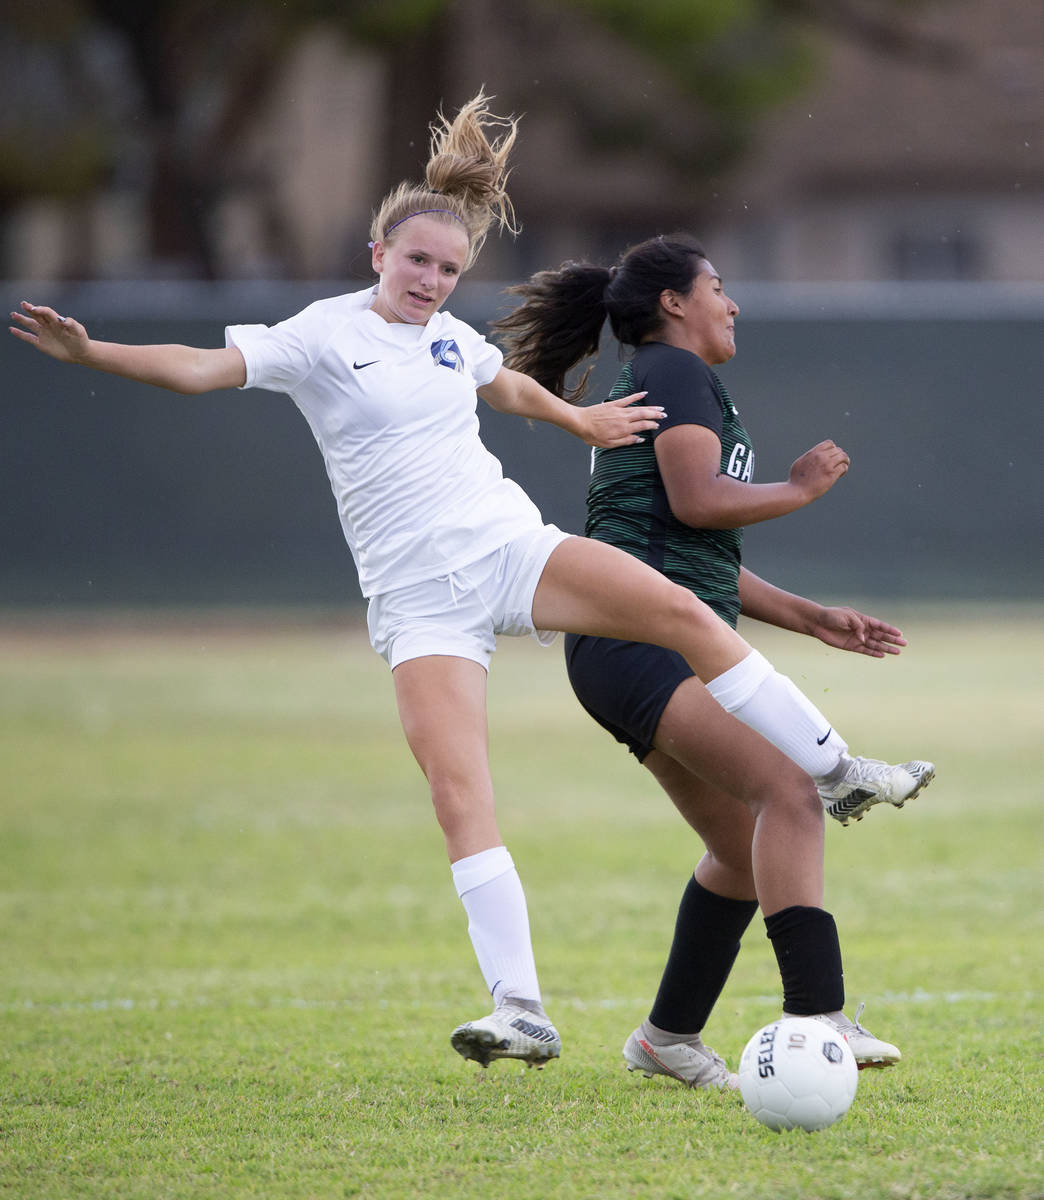 Foothill's Emma Rietz (9) falls back after colliding with Green Valley's Thalia Monreal (19) du ...